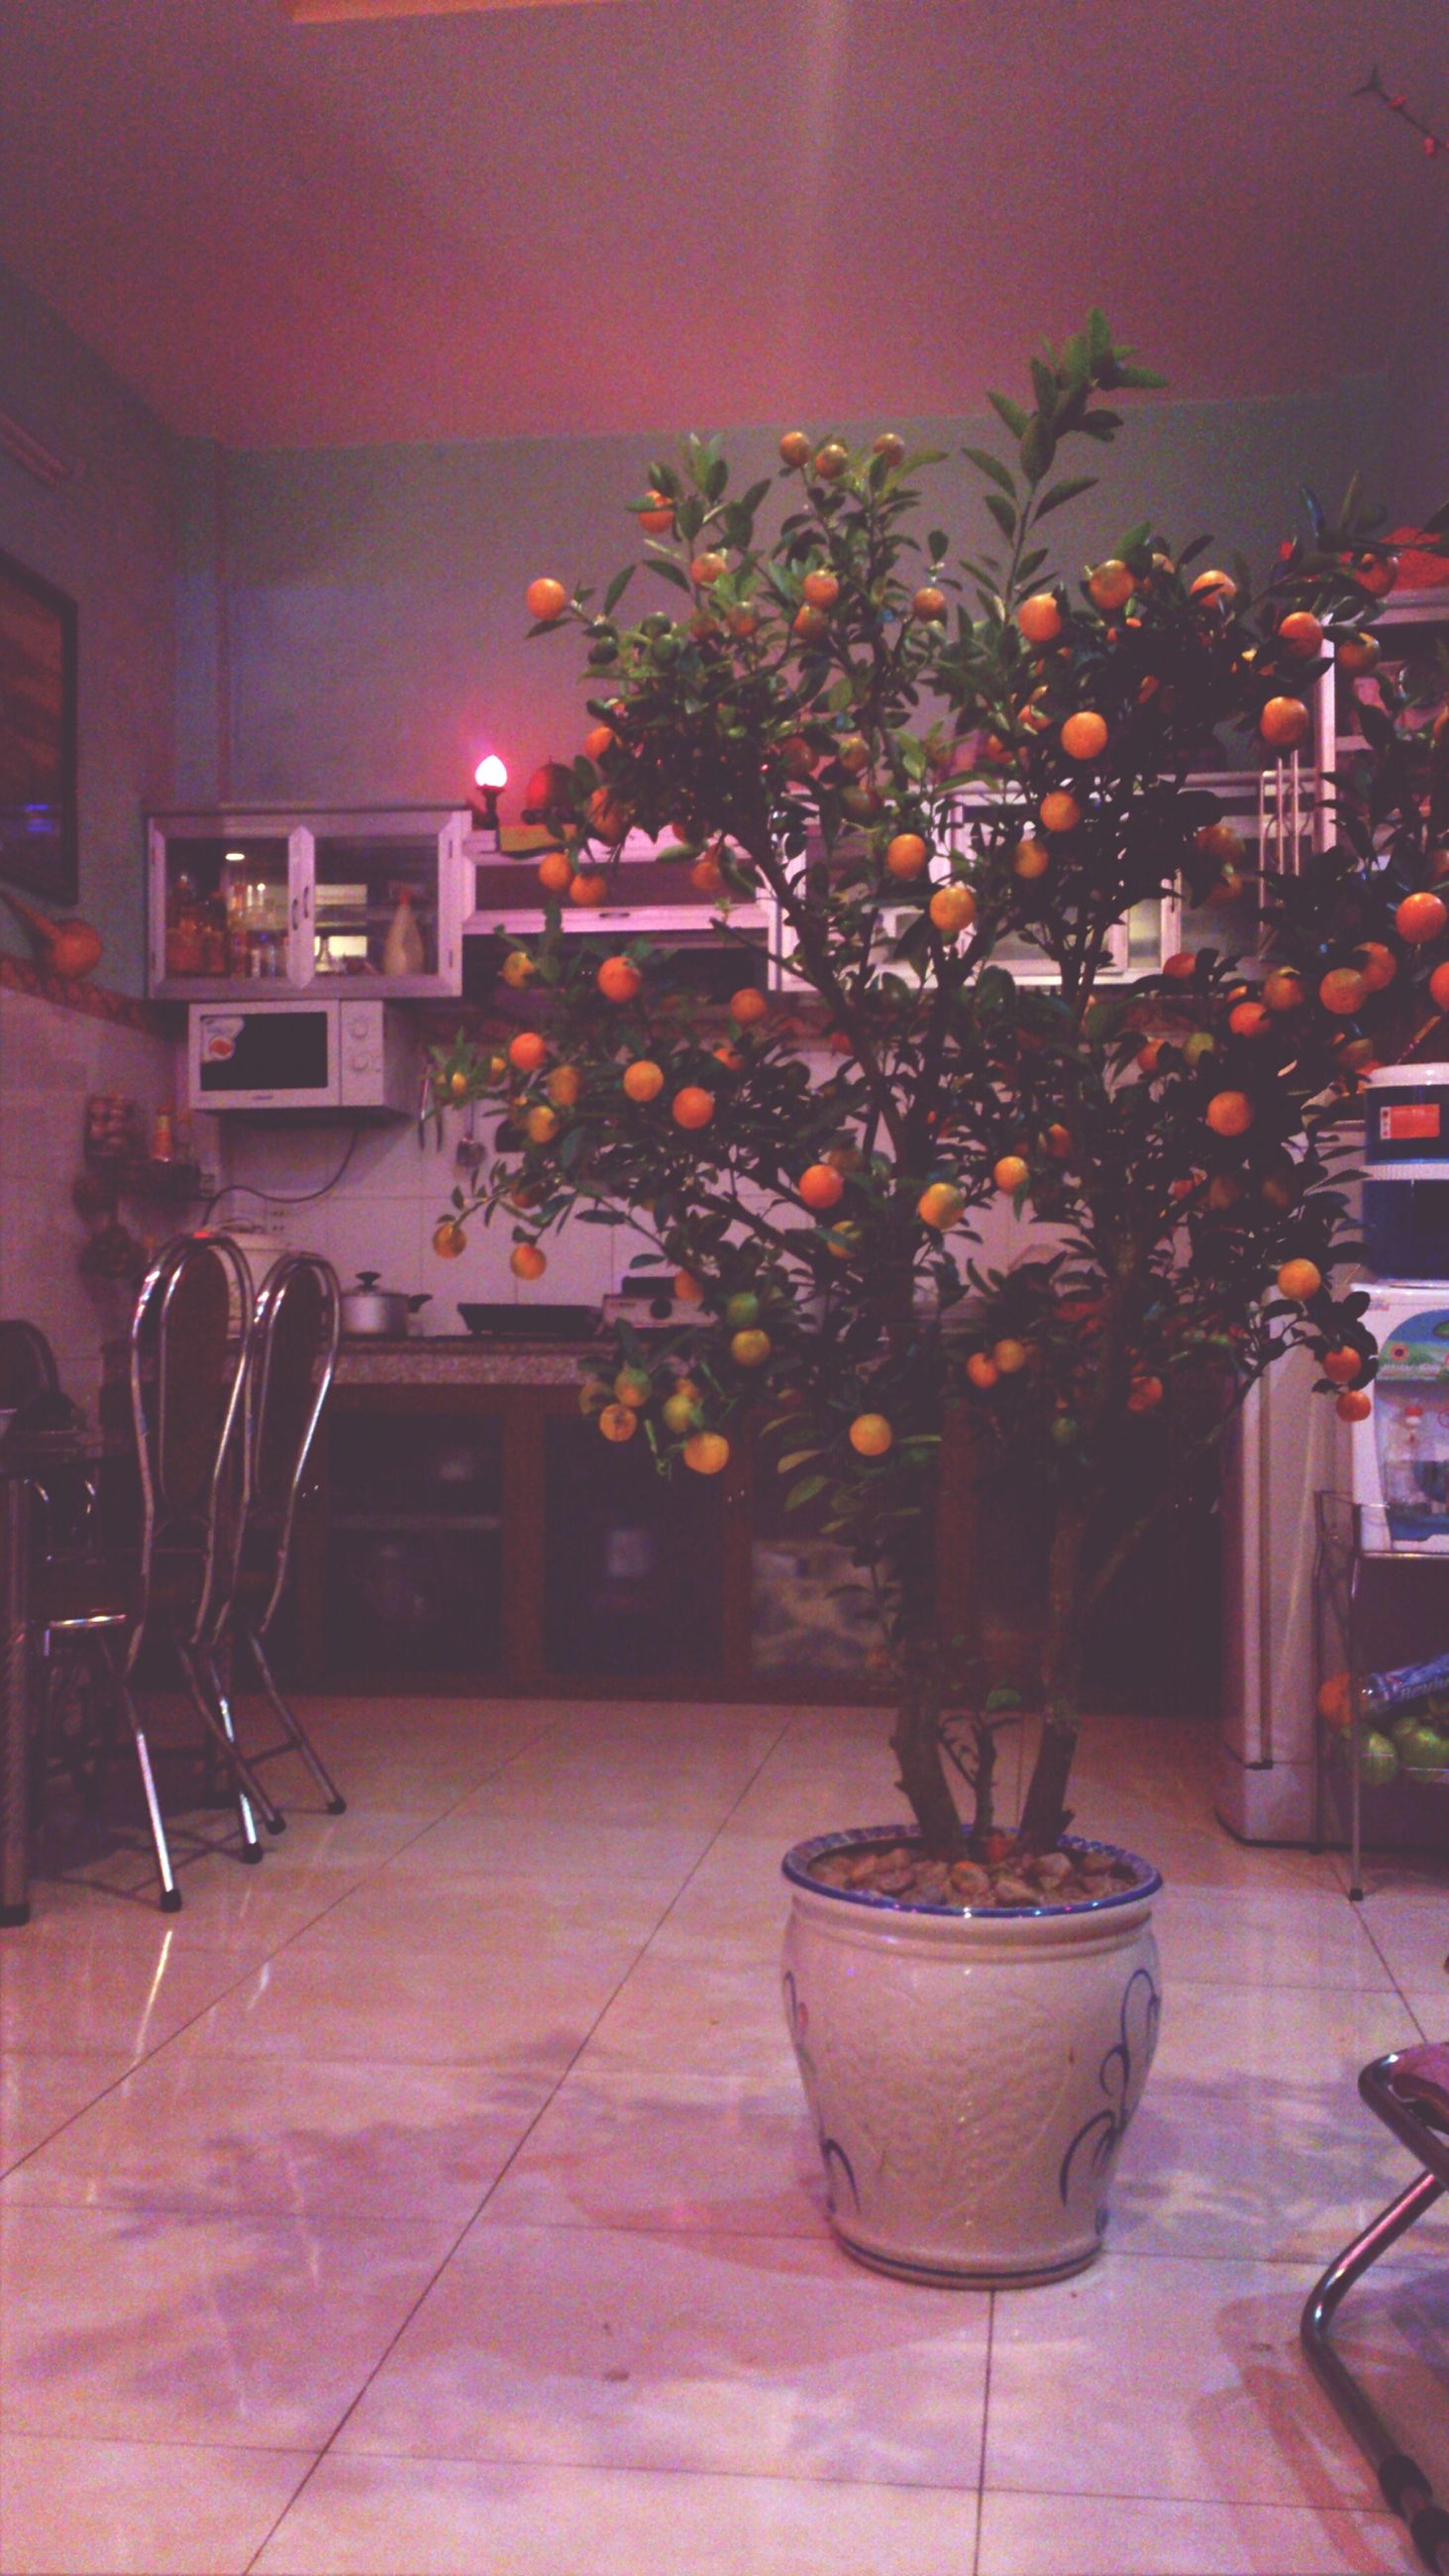 table, illuminated, chair, potted plant, architecture, indoors, built structure, absence, plant, empty, lighting equipment, growth, night, house, building exterior, restaurant, no people, flower, flower pot, vase